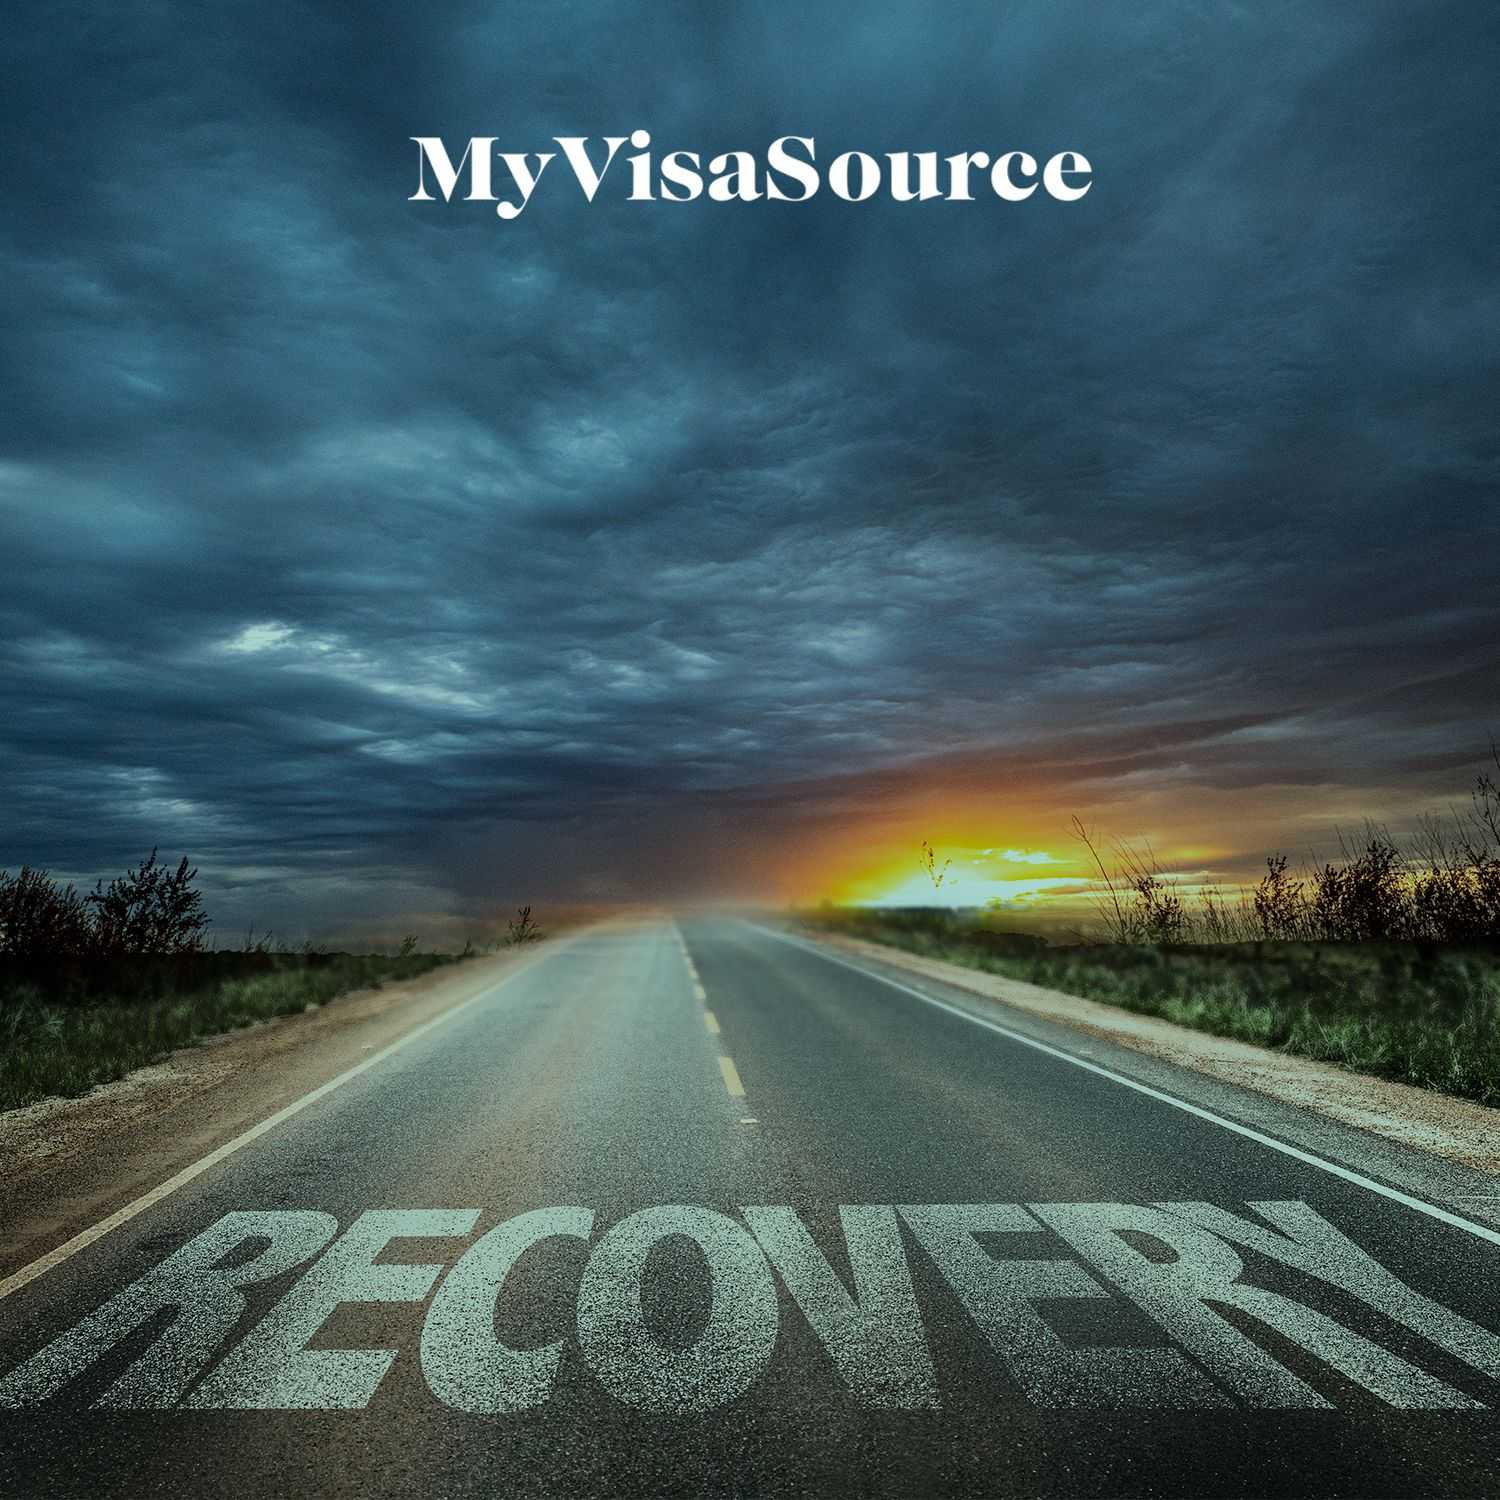 road goes into the horizon with recovery written on it my visa source